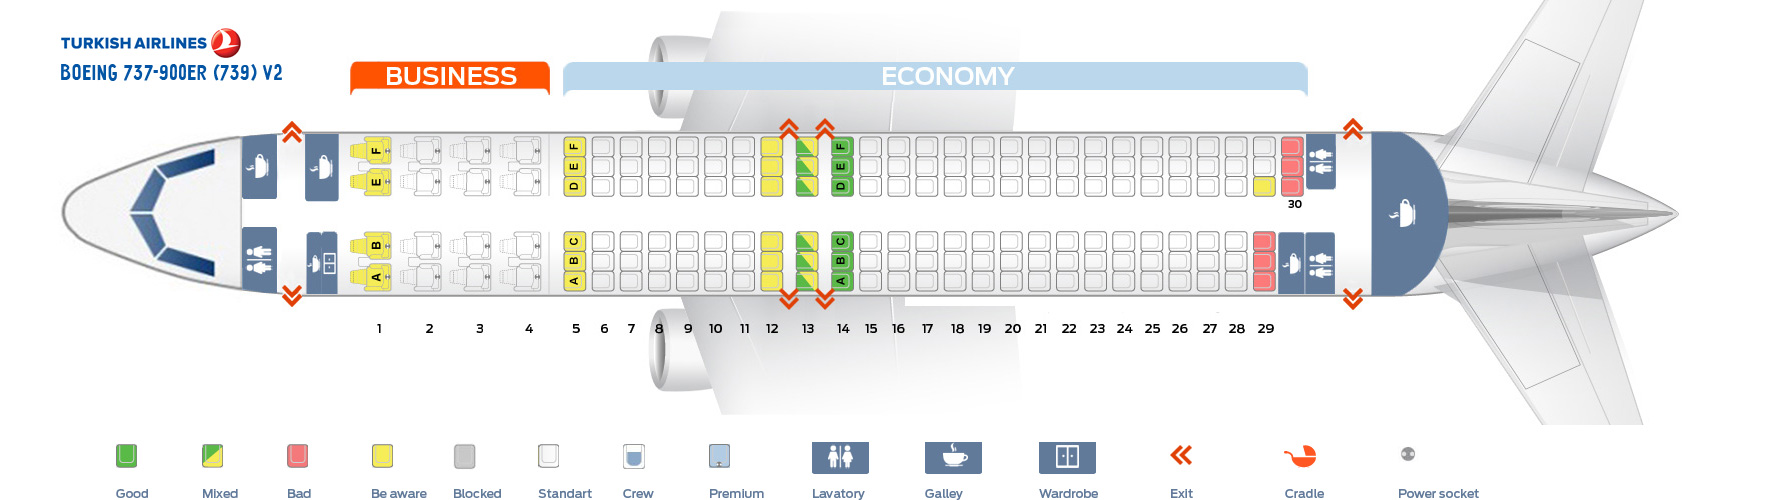 Seat Map Boeing 737-900ER V2 Turkish Airlines